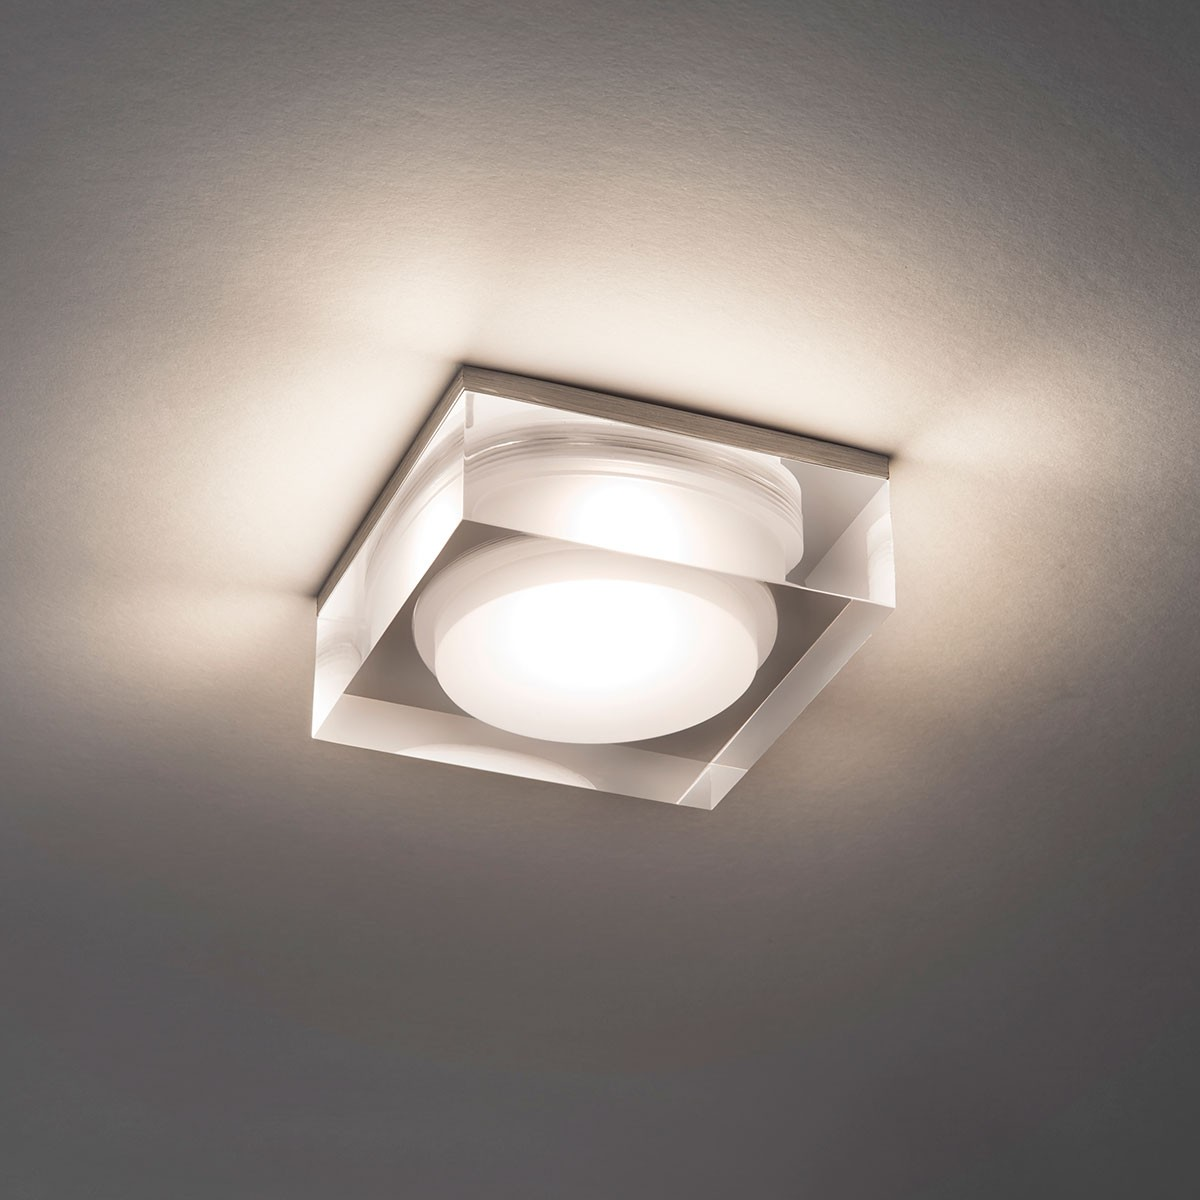 astro vancouver 90 square led polished chrome bathroom downlight at uk